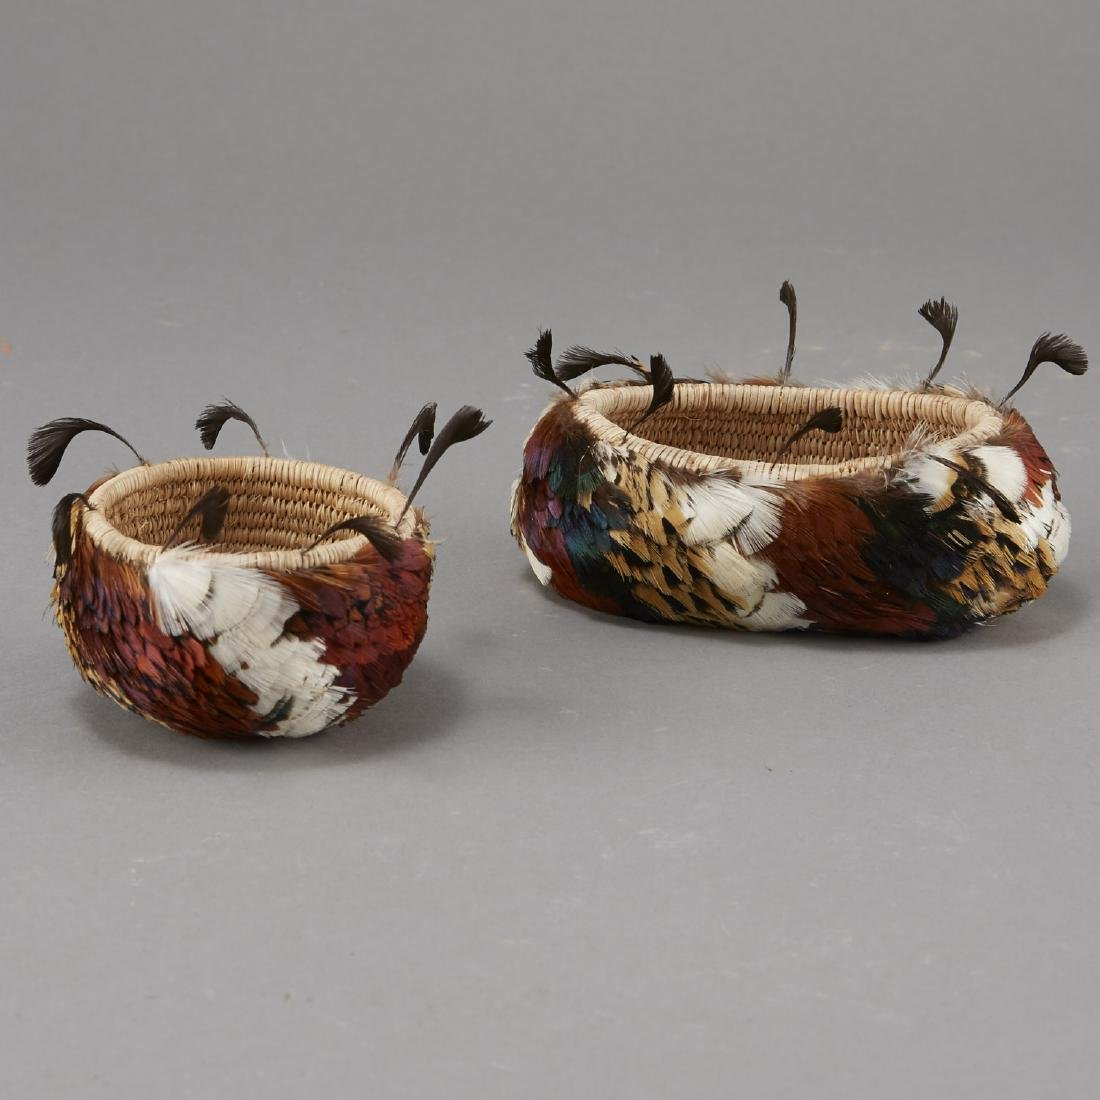 Group of 2 Feathered Pomo Baskets - 2